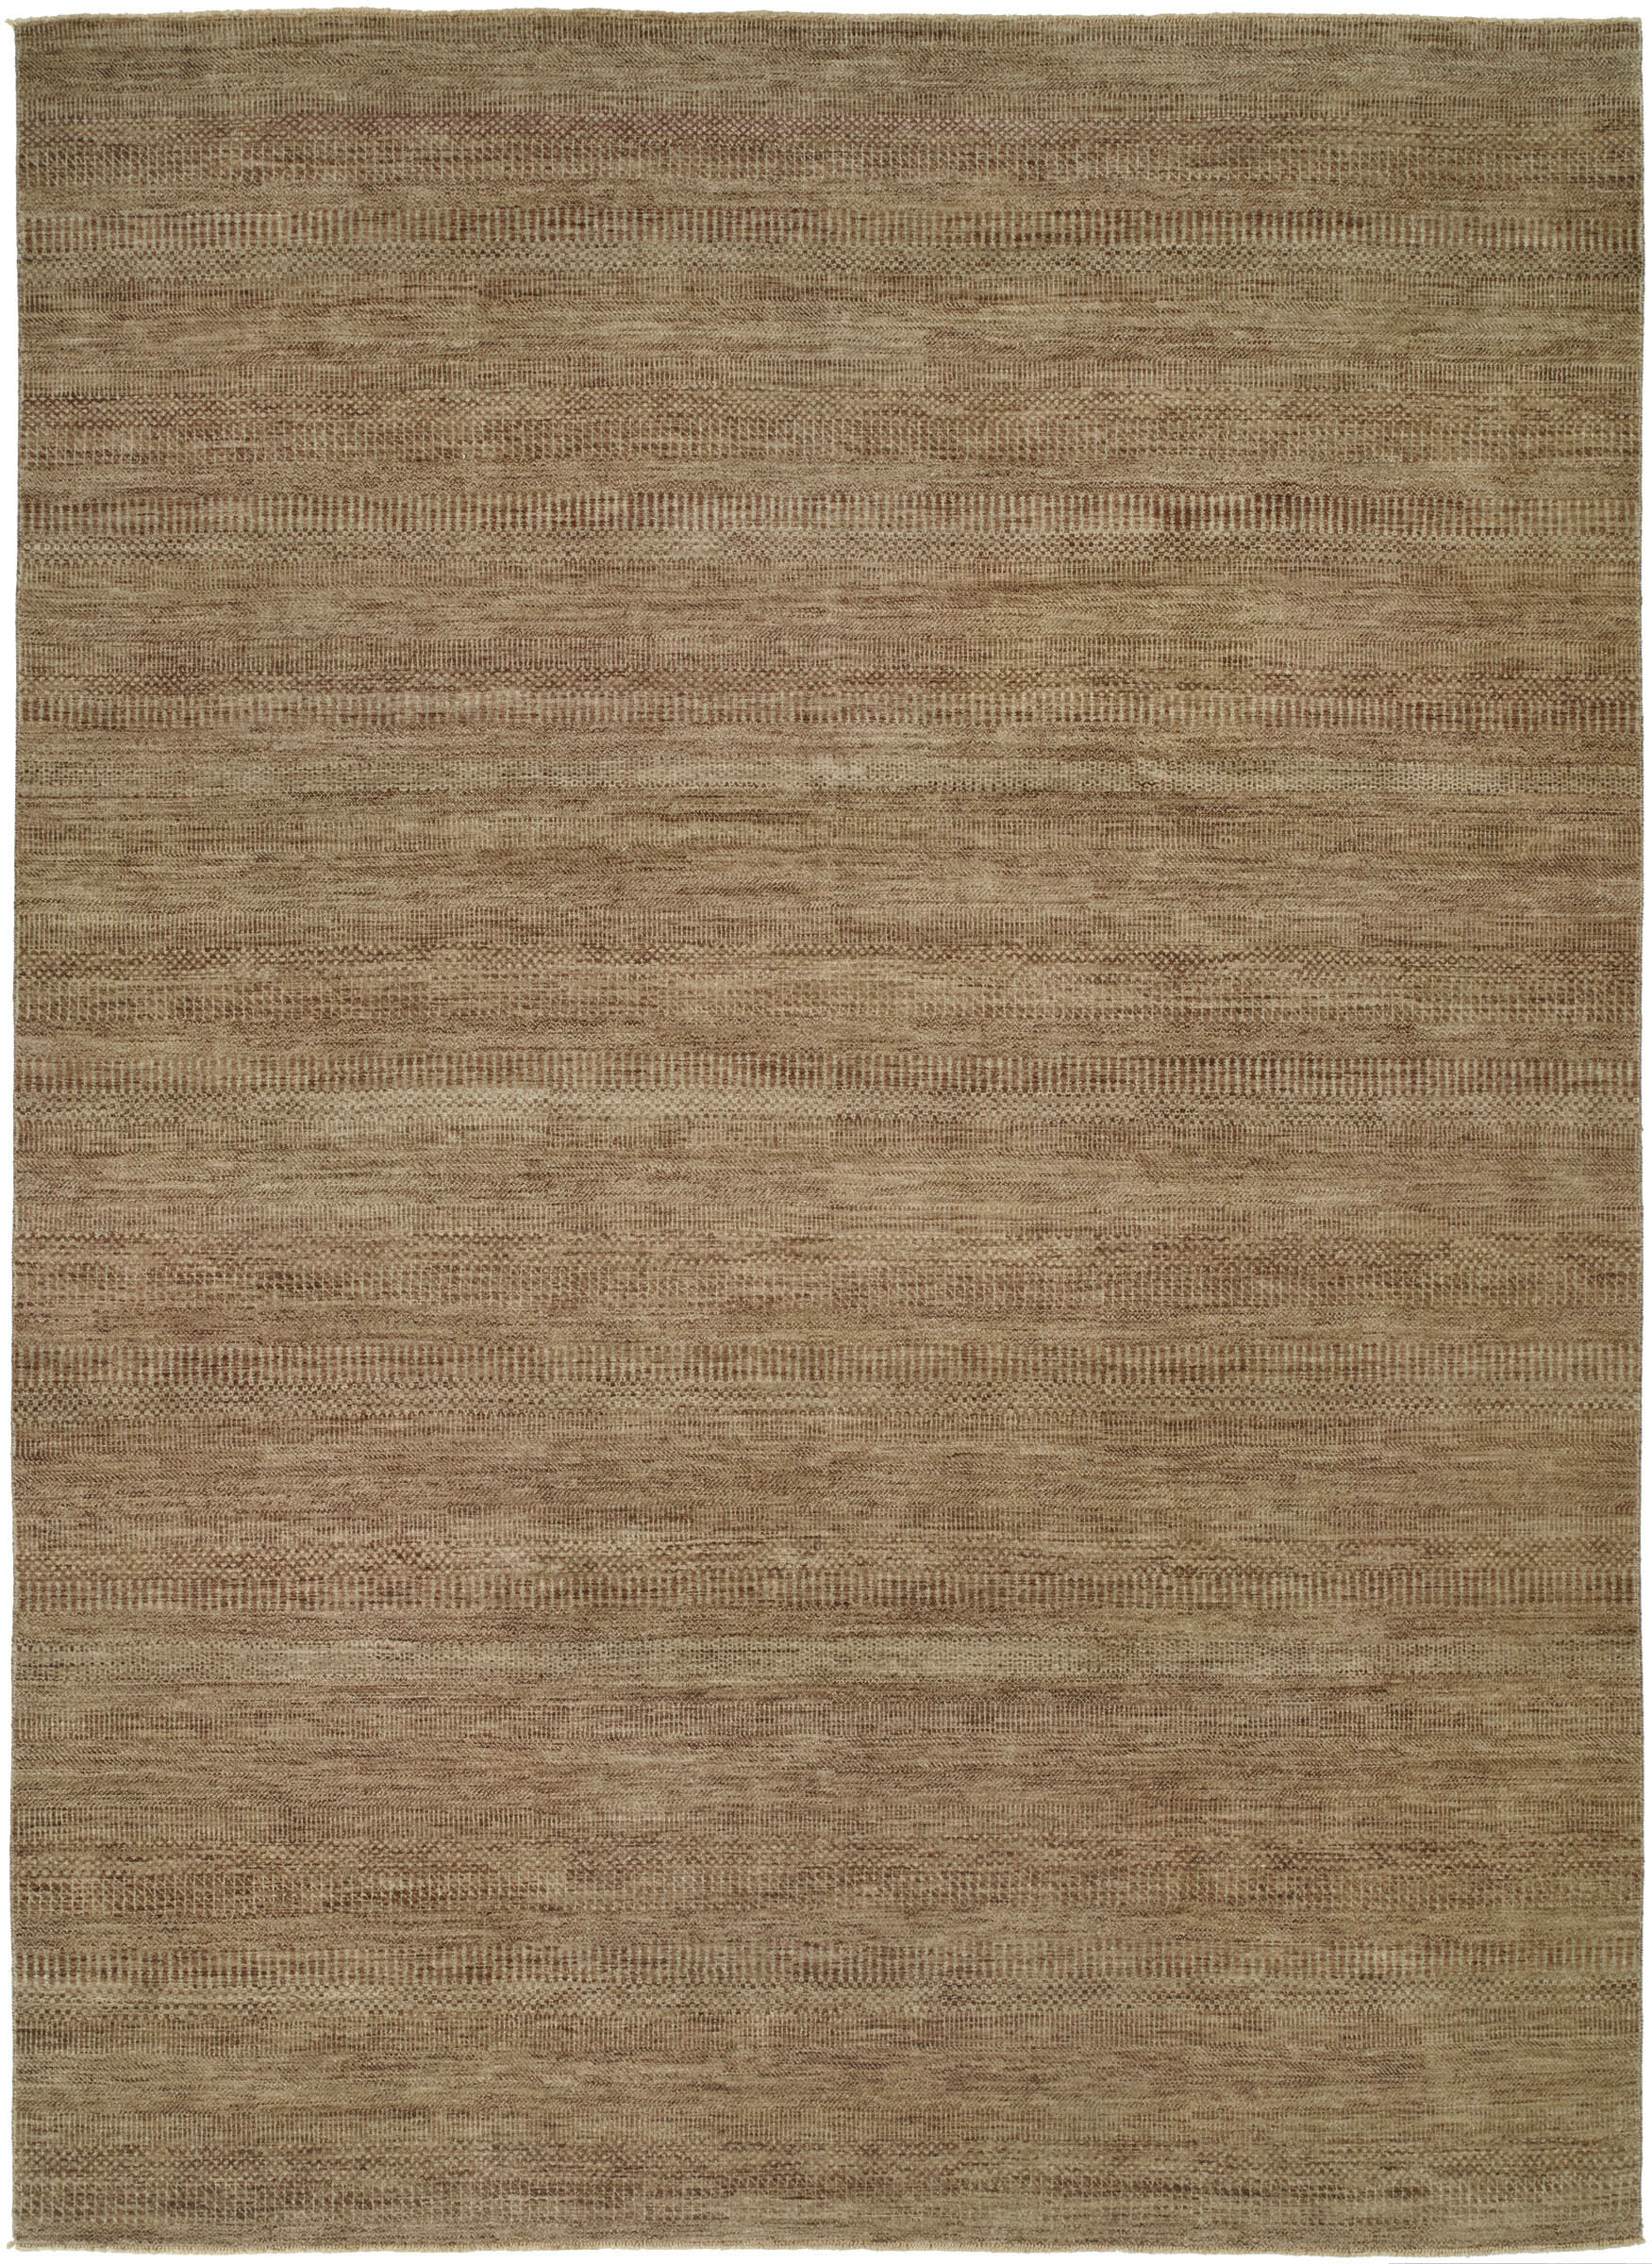 mohawk com chocolate light walmart mh area medgalia ip brown rug